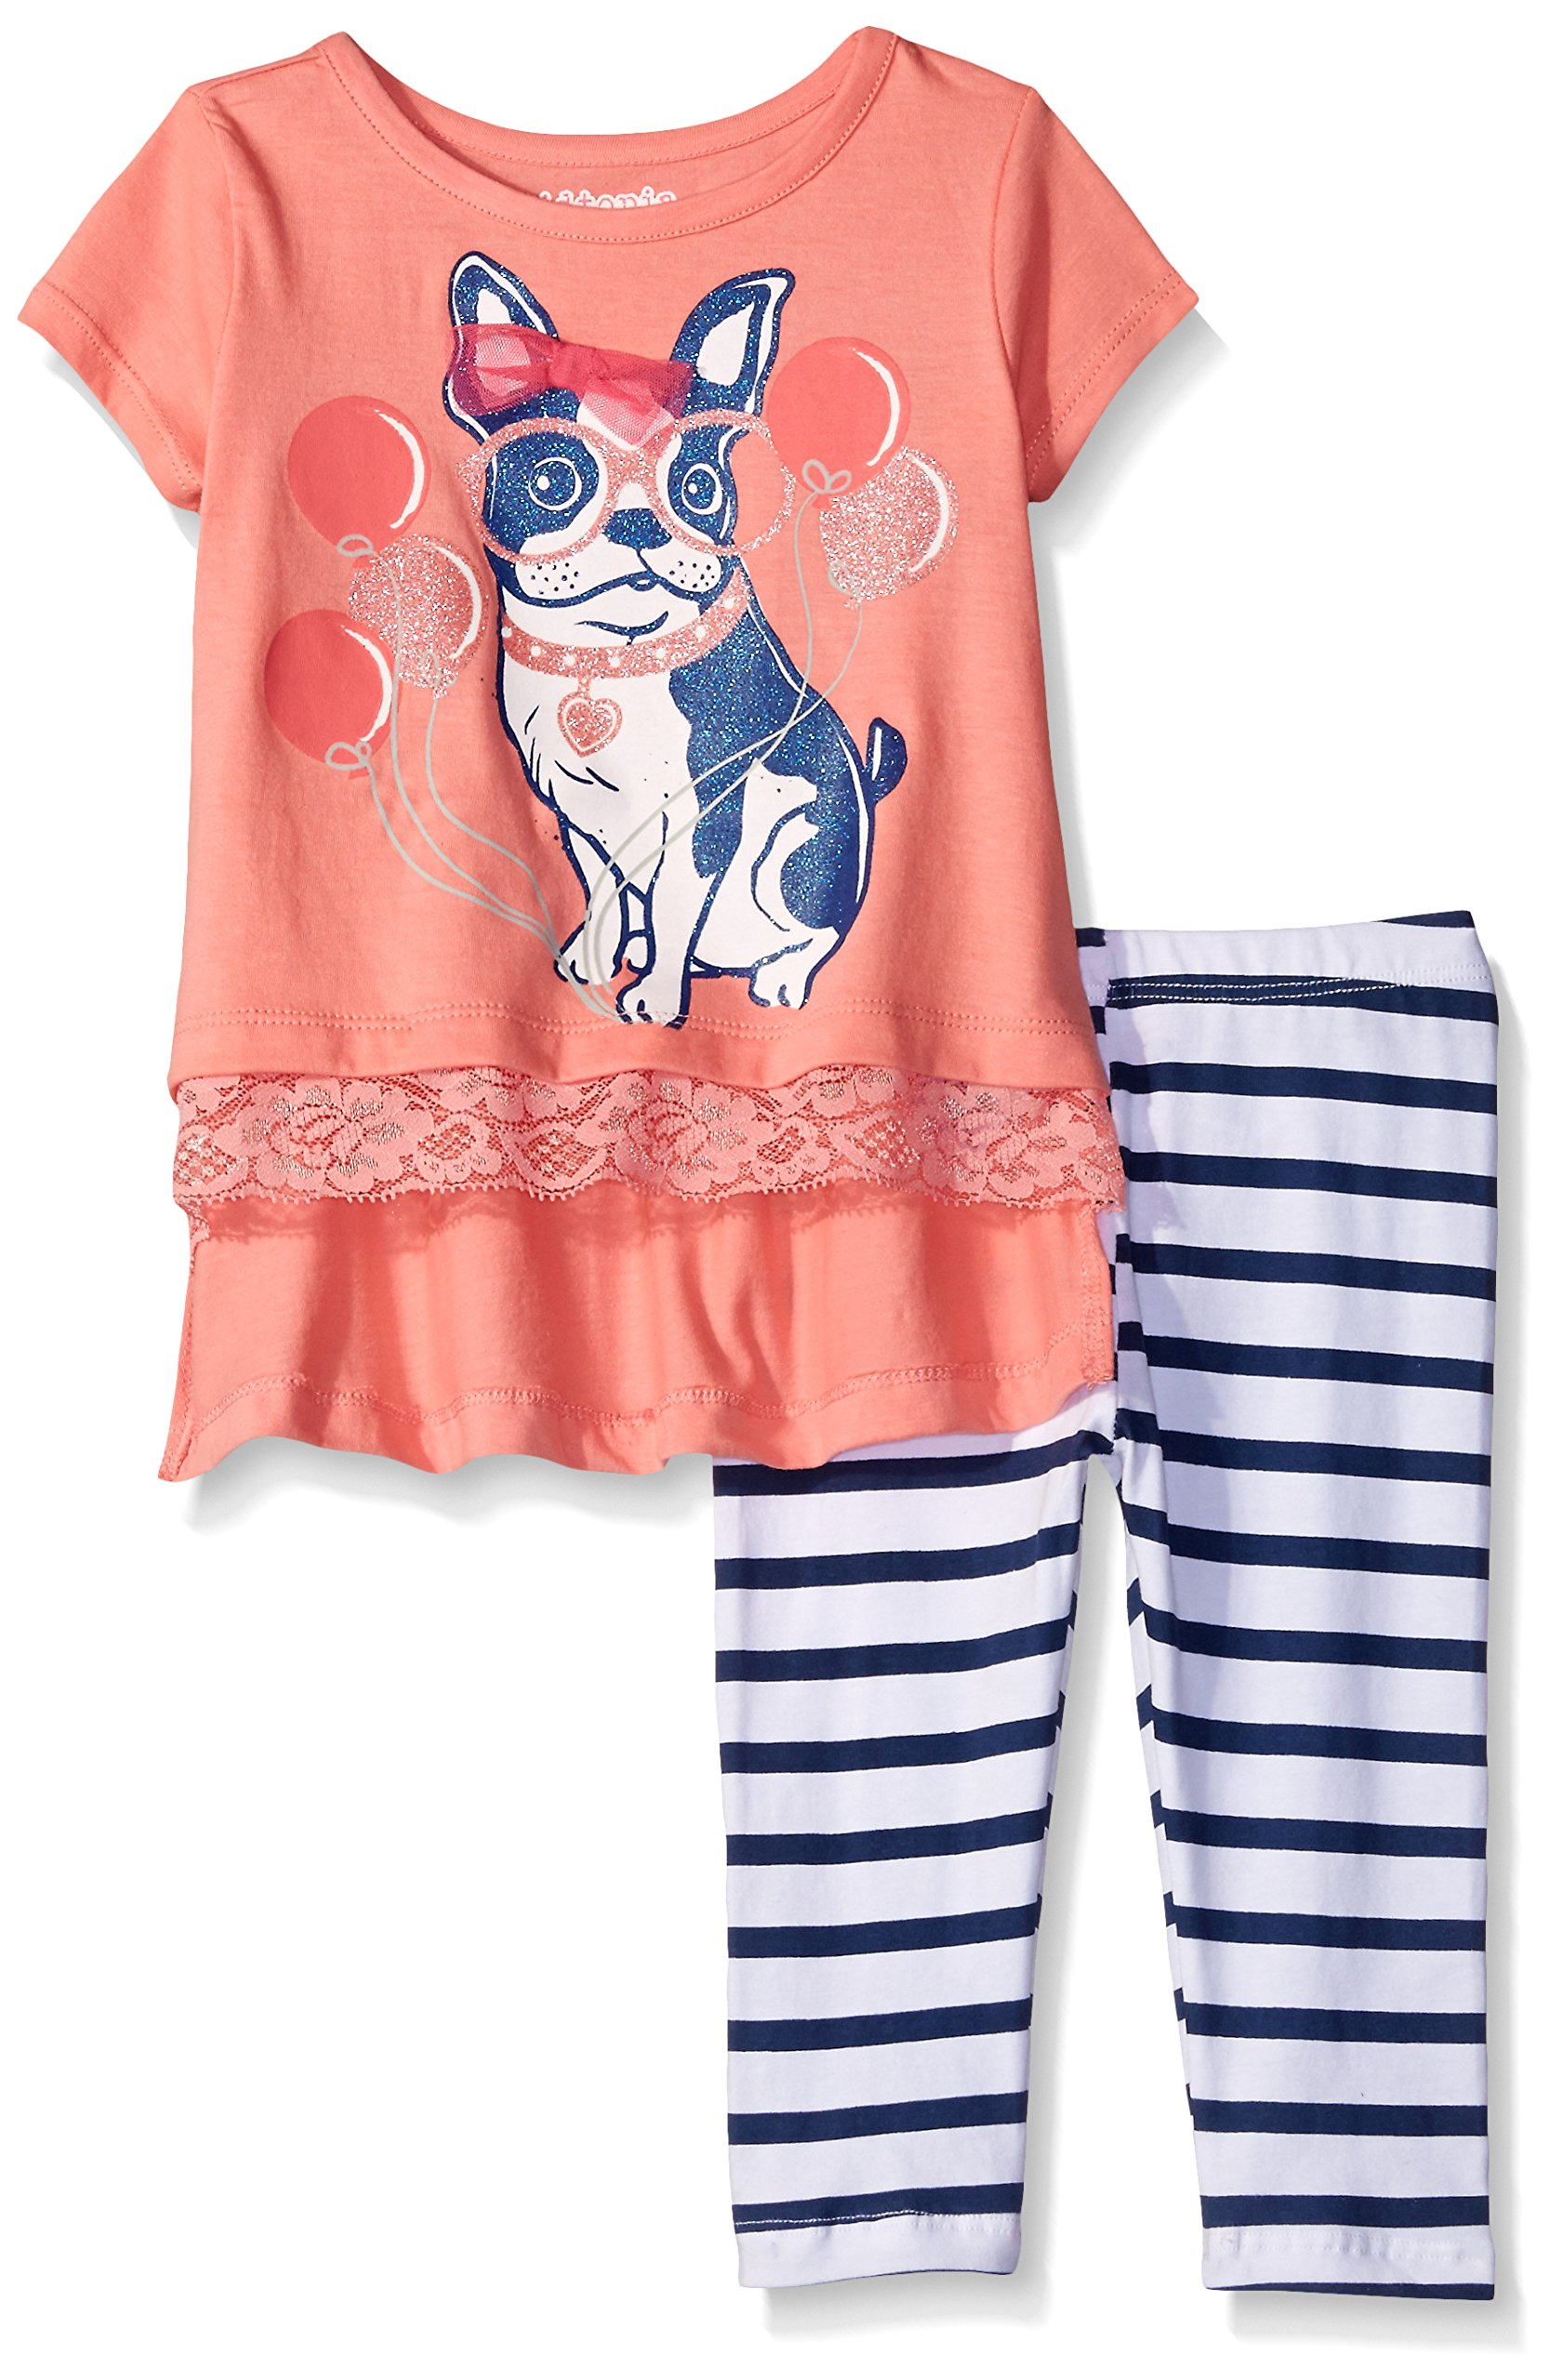 Kidtopia Little Girls' Toddler Dog with Glasses and Cluney Lace with Striped Legging Tunic Set, Conch Shell, 3T